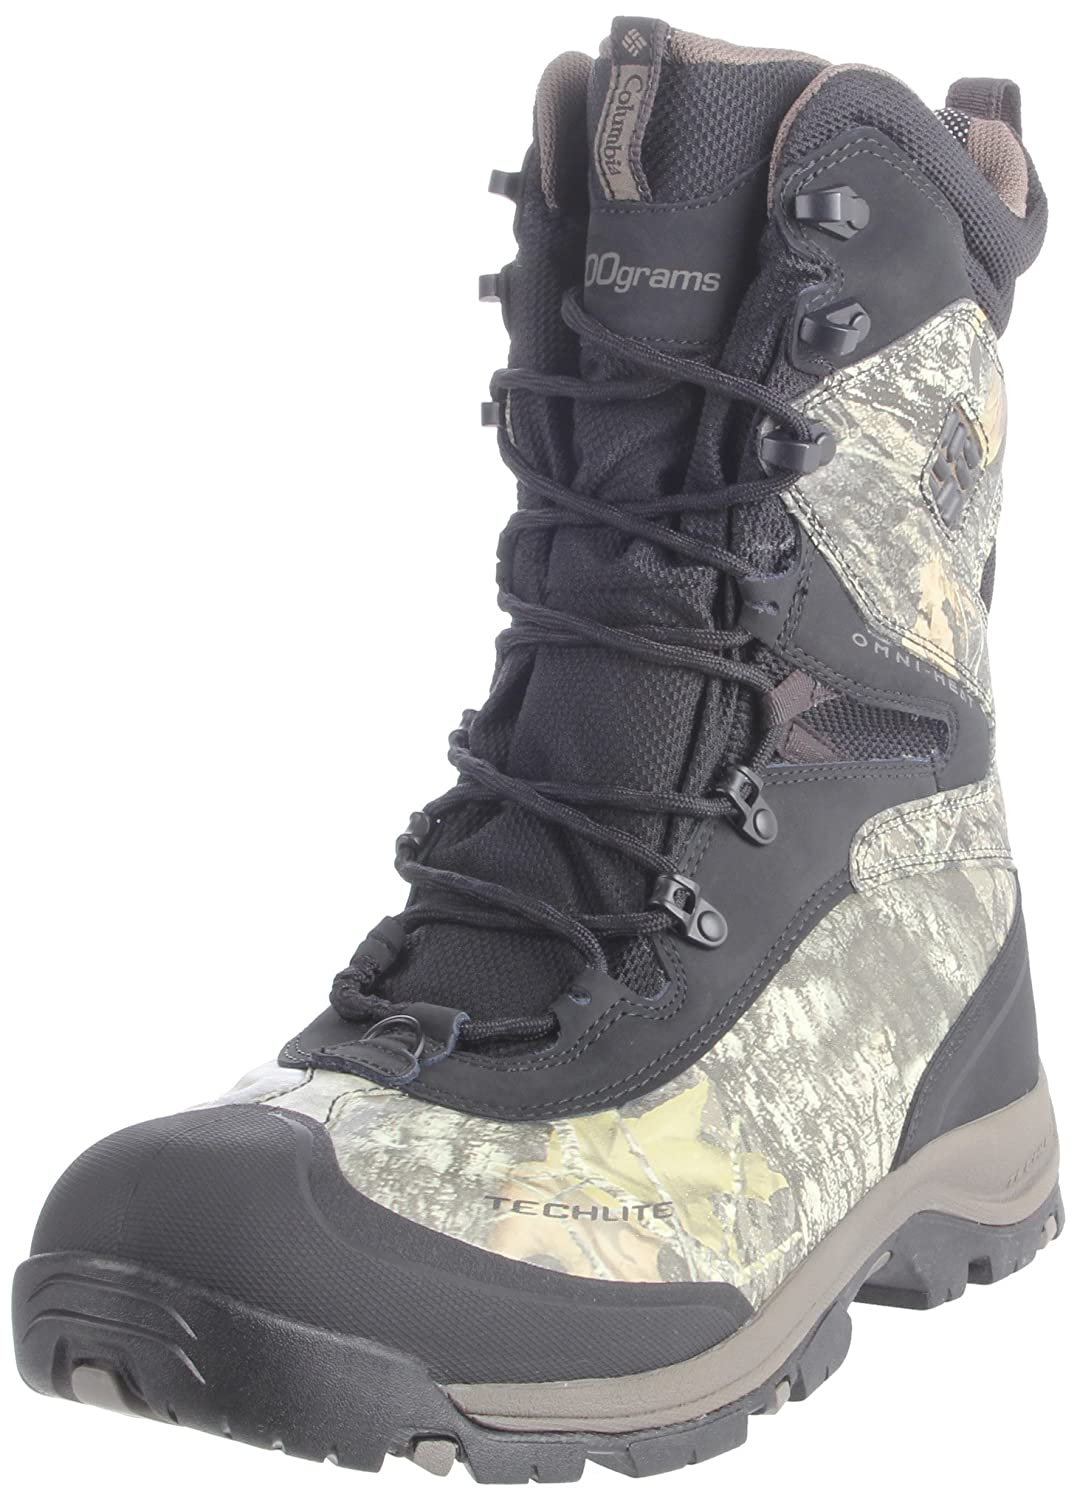 Columbia Sportswear Men's Bugaboot Plus Xtm Camo Cold Weather Boot,$83.96 , 9.5M US